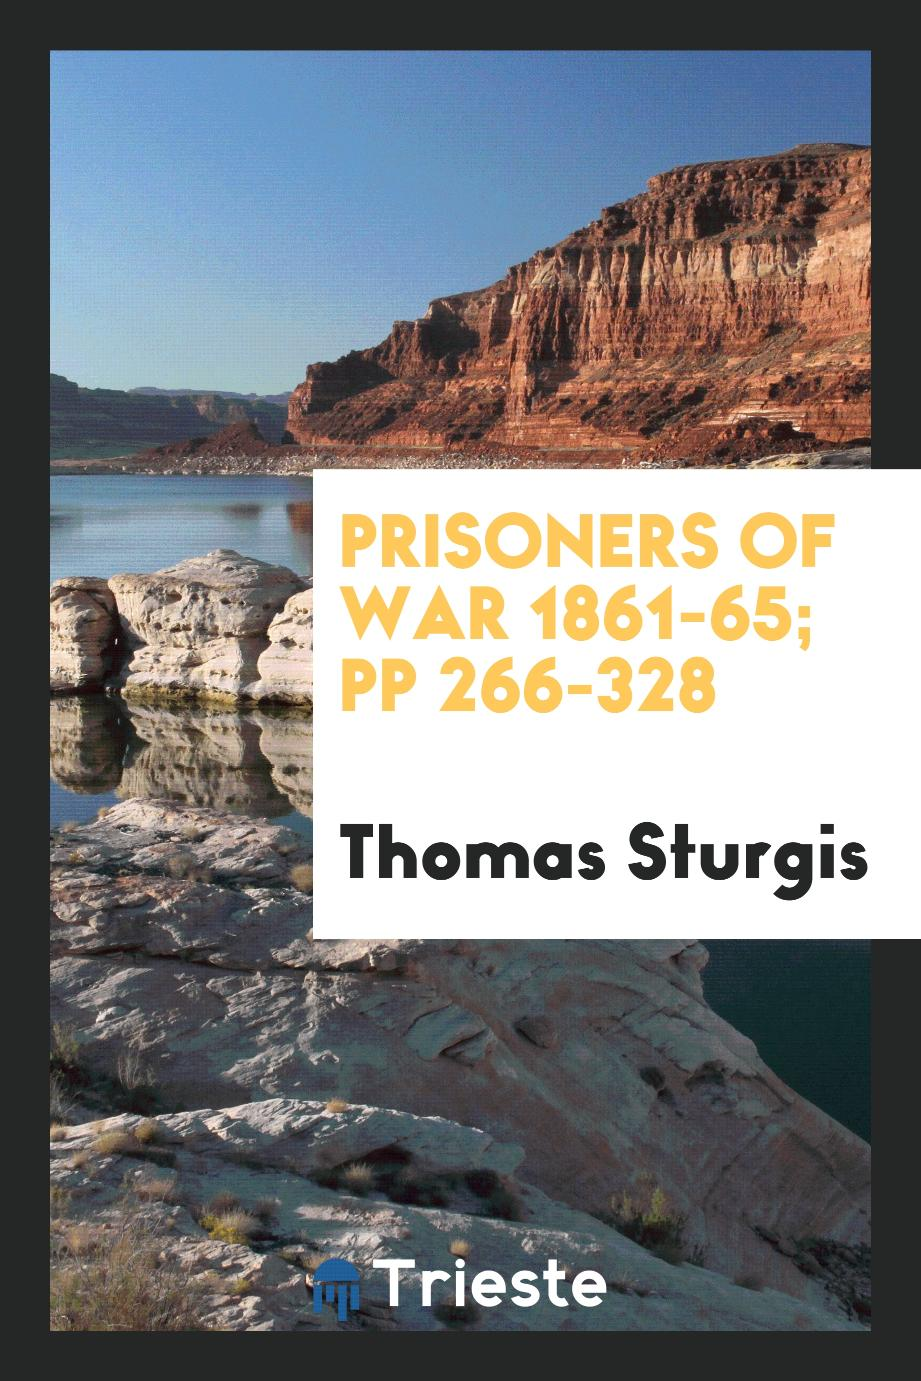 Prisoners of War 1861-65; pp 266-328